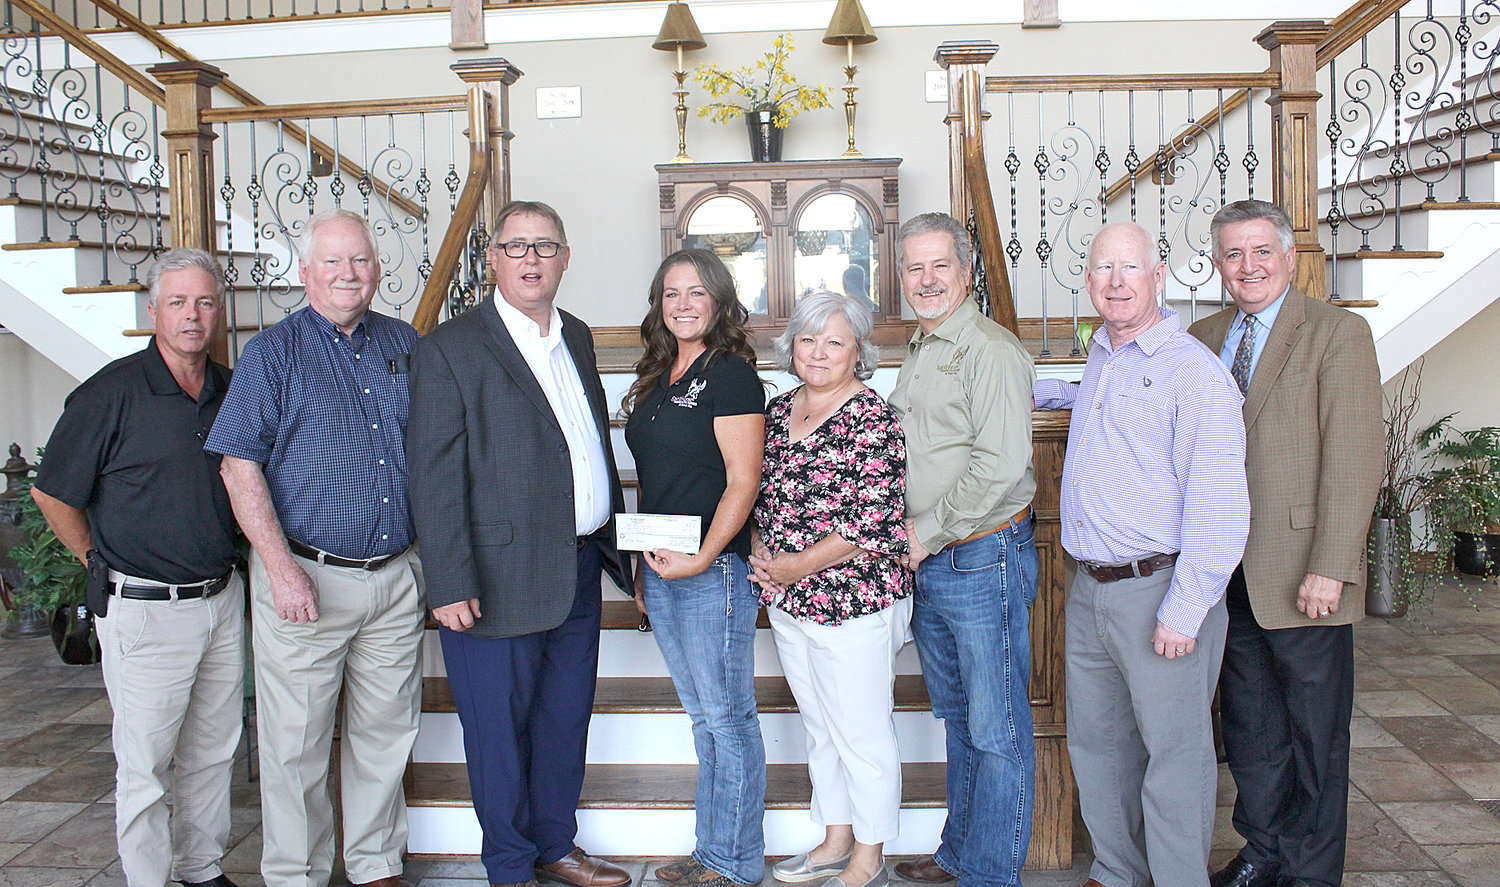 SPIRITHORSE Therapeutic Riding at Black Fox representatives receive a $3,000 donation from Bachman Academy. From left are board members Jeff Gregory, Ken Weller, director Mark Frizzell, SpiritHorse representatives Emily Shelton, Darlene Poteet and Steve Poteet and board members Mike Sikes and Jimmy Dupree.